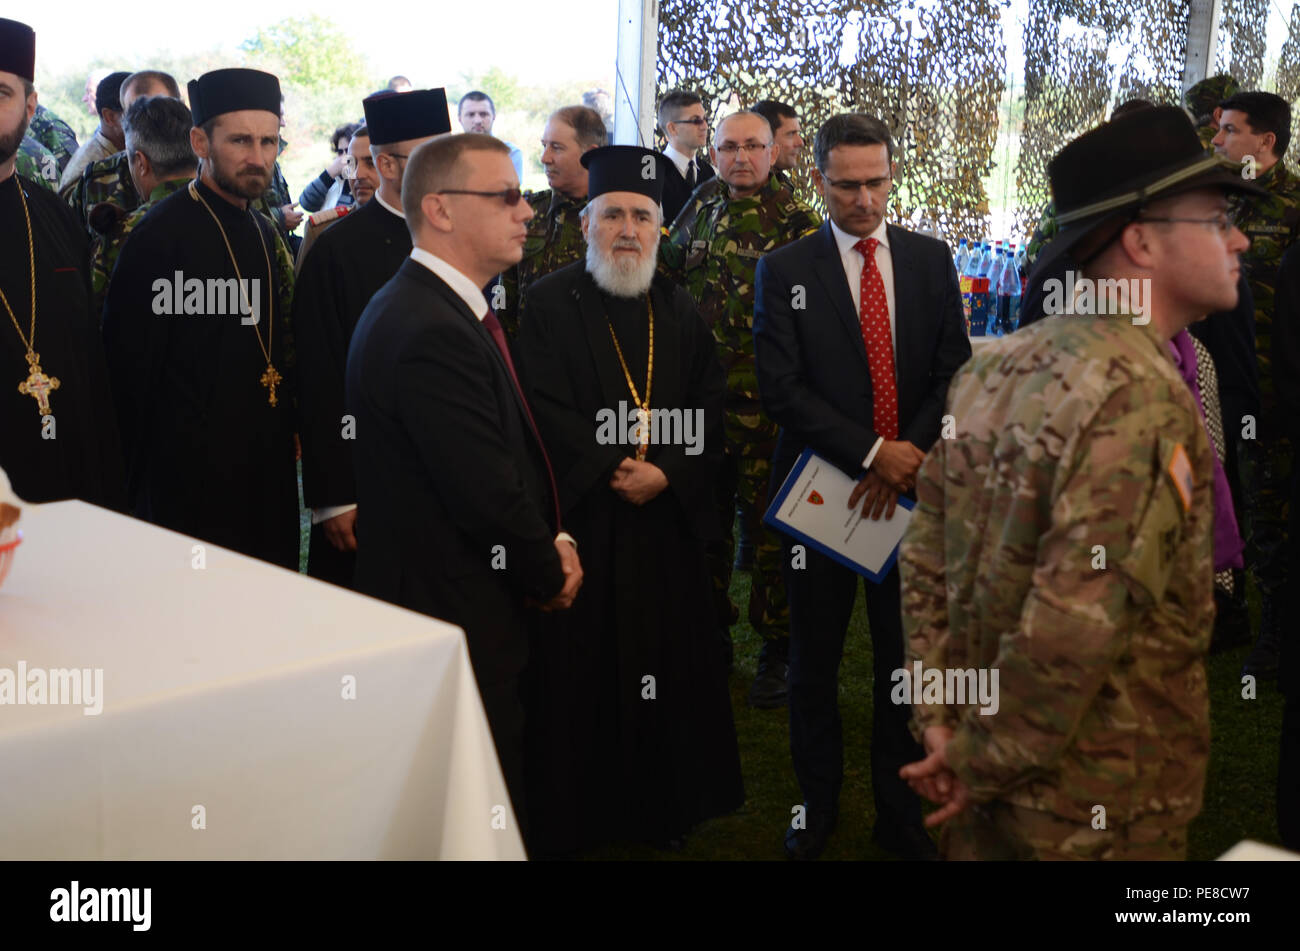 Archbishop Timotei, Archbishop of Arad, Romania visits the U.S. and Romanian Soldiers at a ceremony near Arad, Romania, during Exercise Dragoon Crossing – Romania, Oct. 24-26, 2015. s a strengthening of NATO's persistent presence in the region in support of Operation Atlantic Resolve. (U.S. Army photo by Staff Sgt. Steven M. Colvin/10th Press Camp Headquarters) - Stock Image